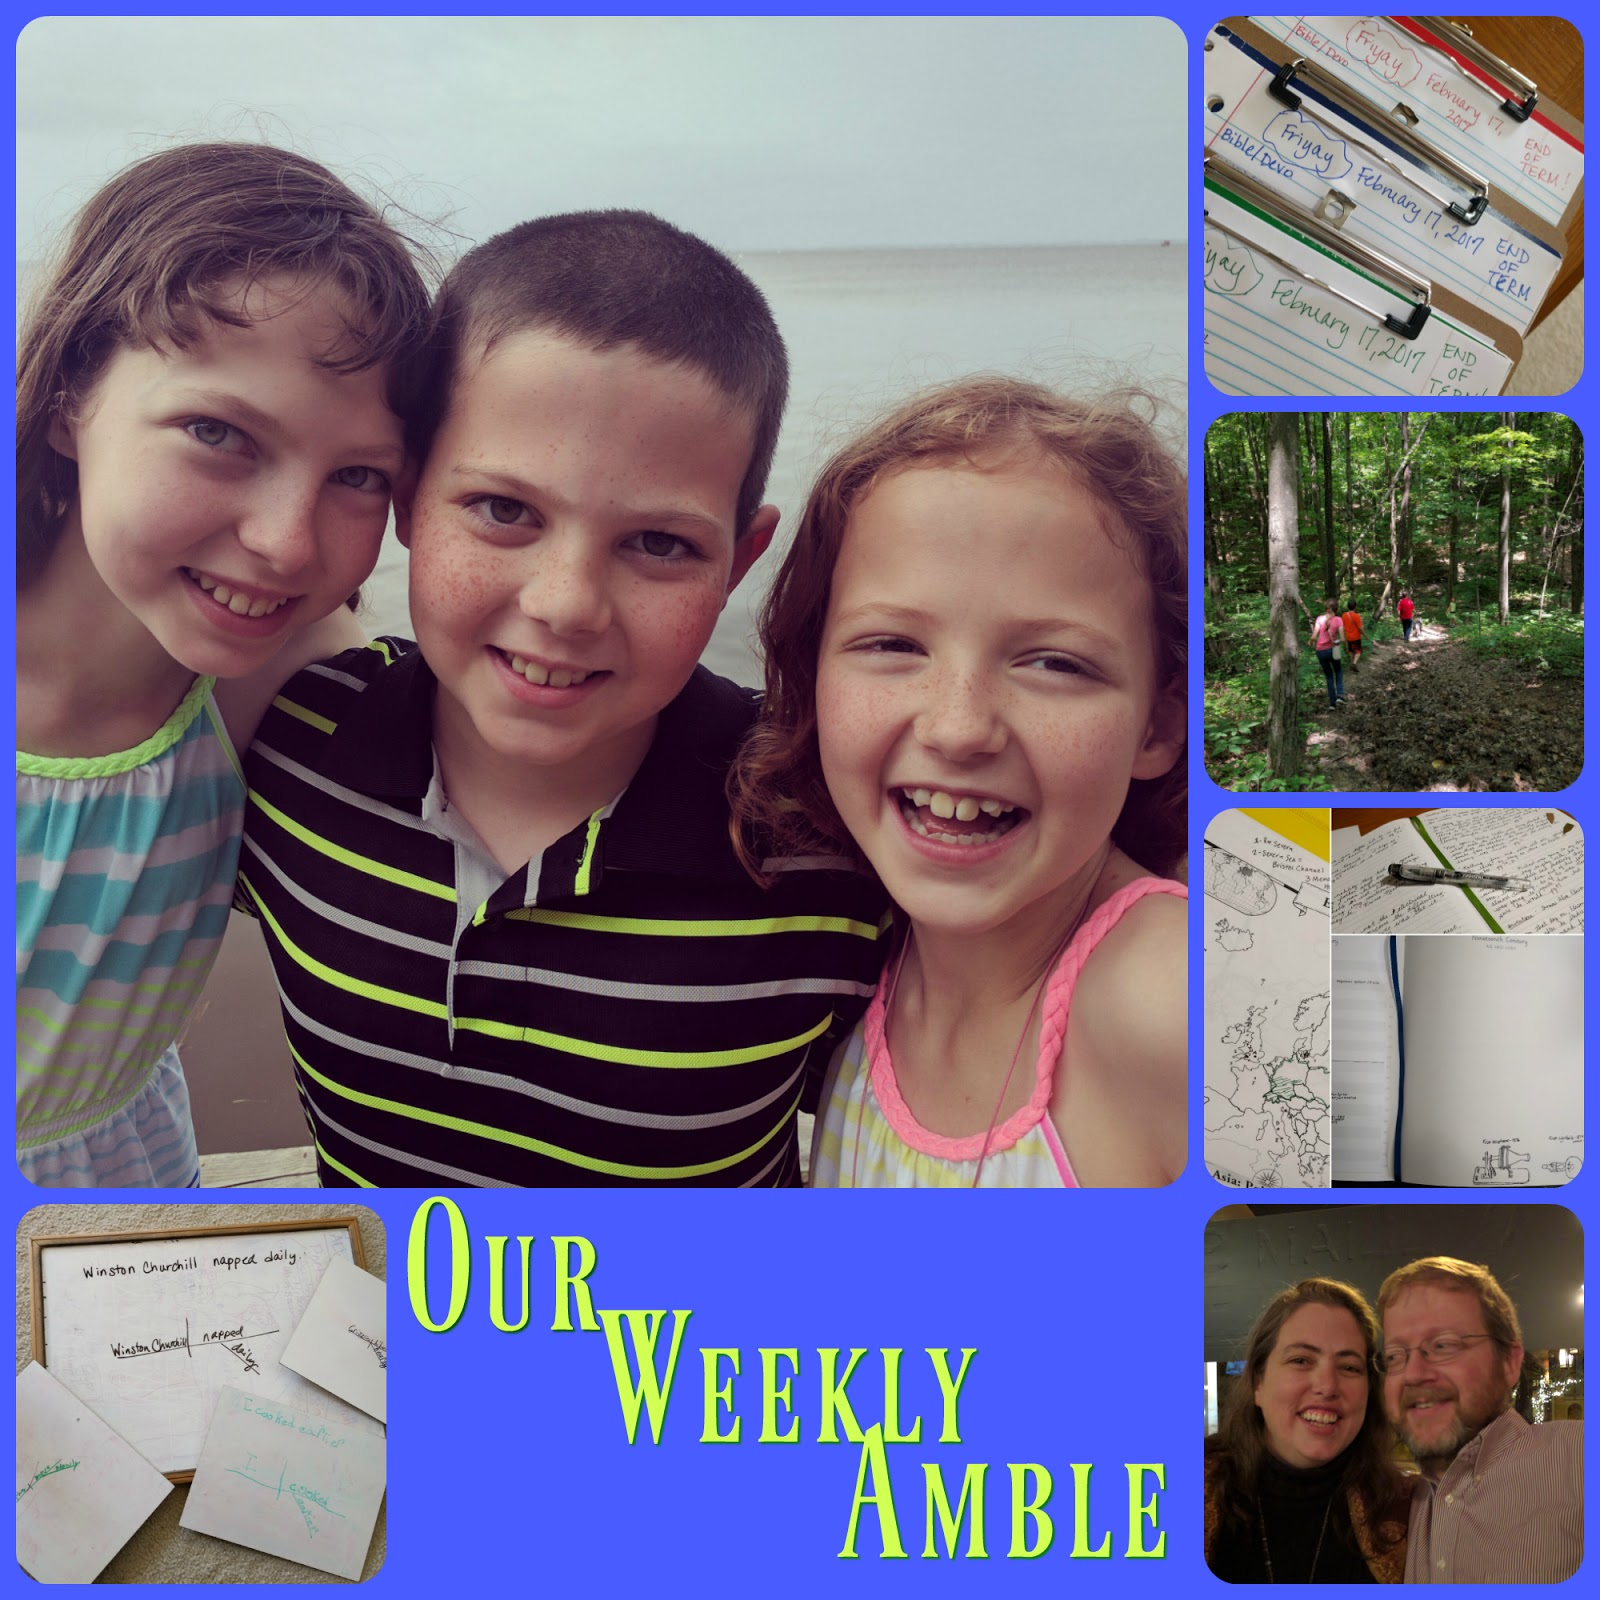 Our Weekly Amble for September 18-22, 2017